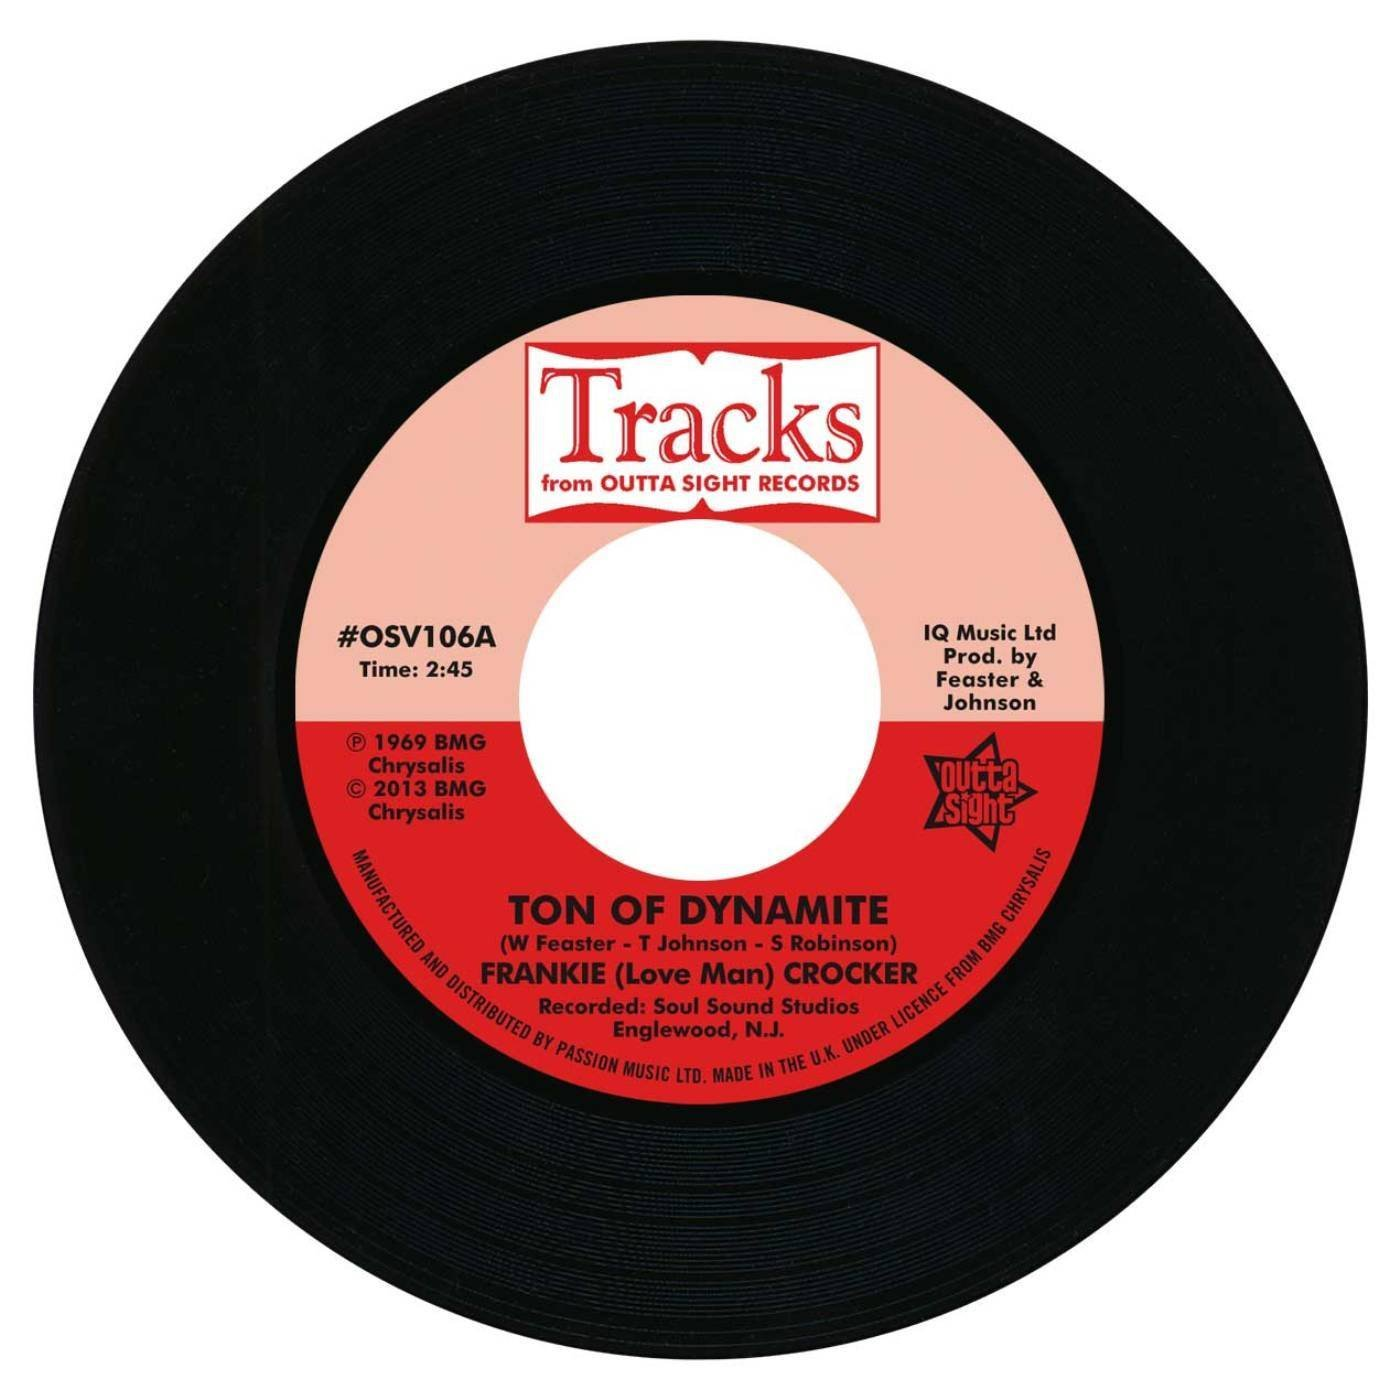 Frankie Crocker – Ton Of Dynamite / Willie & The Mighty Magnificents – Funky 8 Corners 45 (Outta Sight) 7″ Vinyl